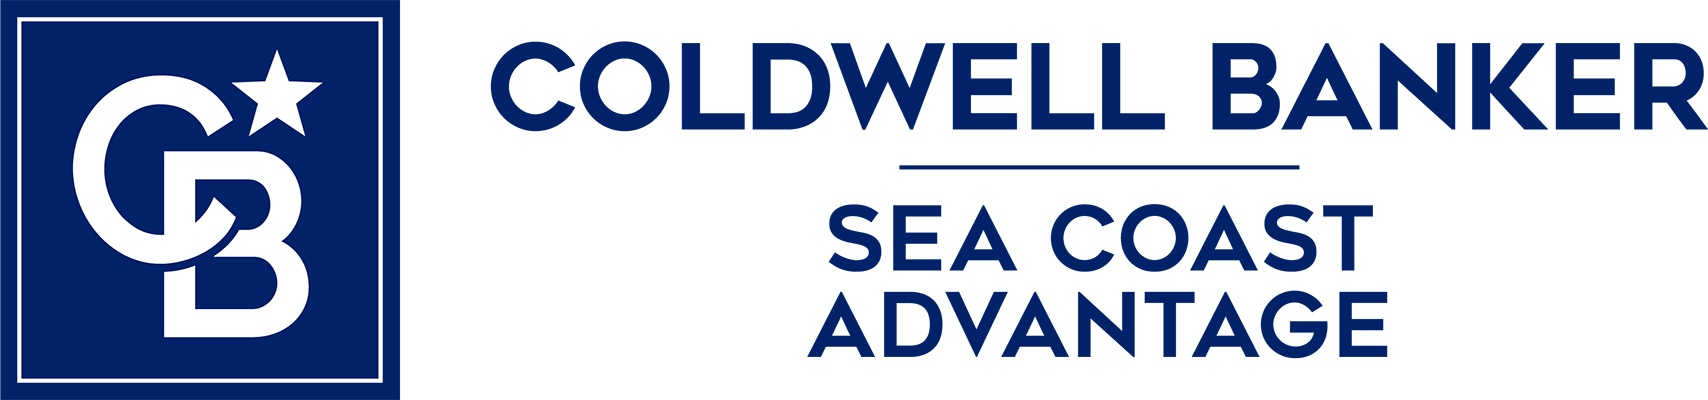 Judy McGuire - Coldwell Banker Sea Coast Advantage Realty Logo